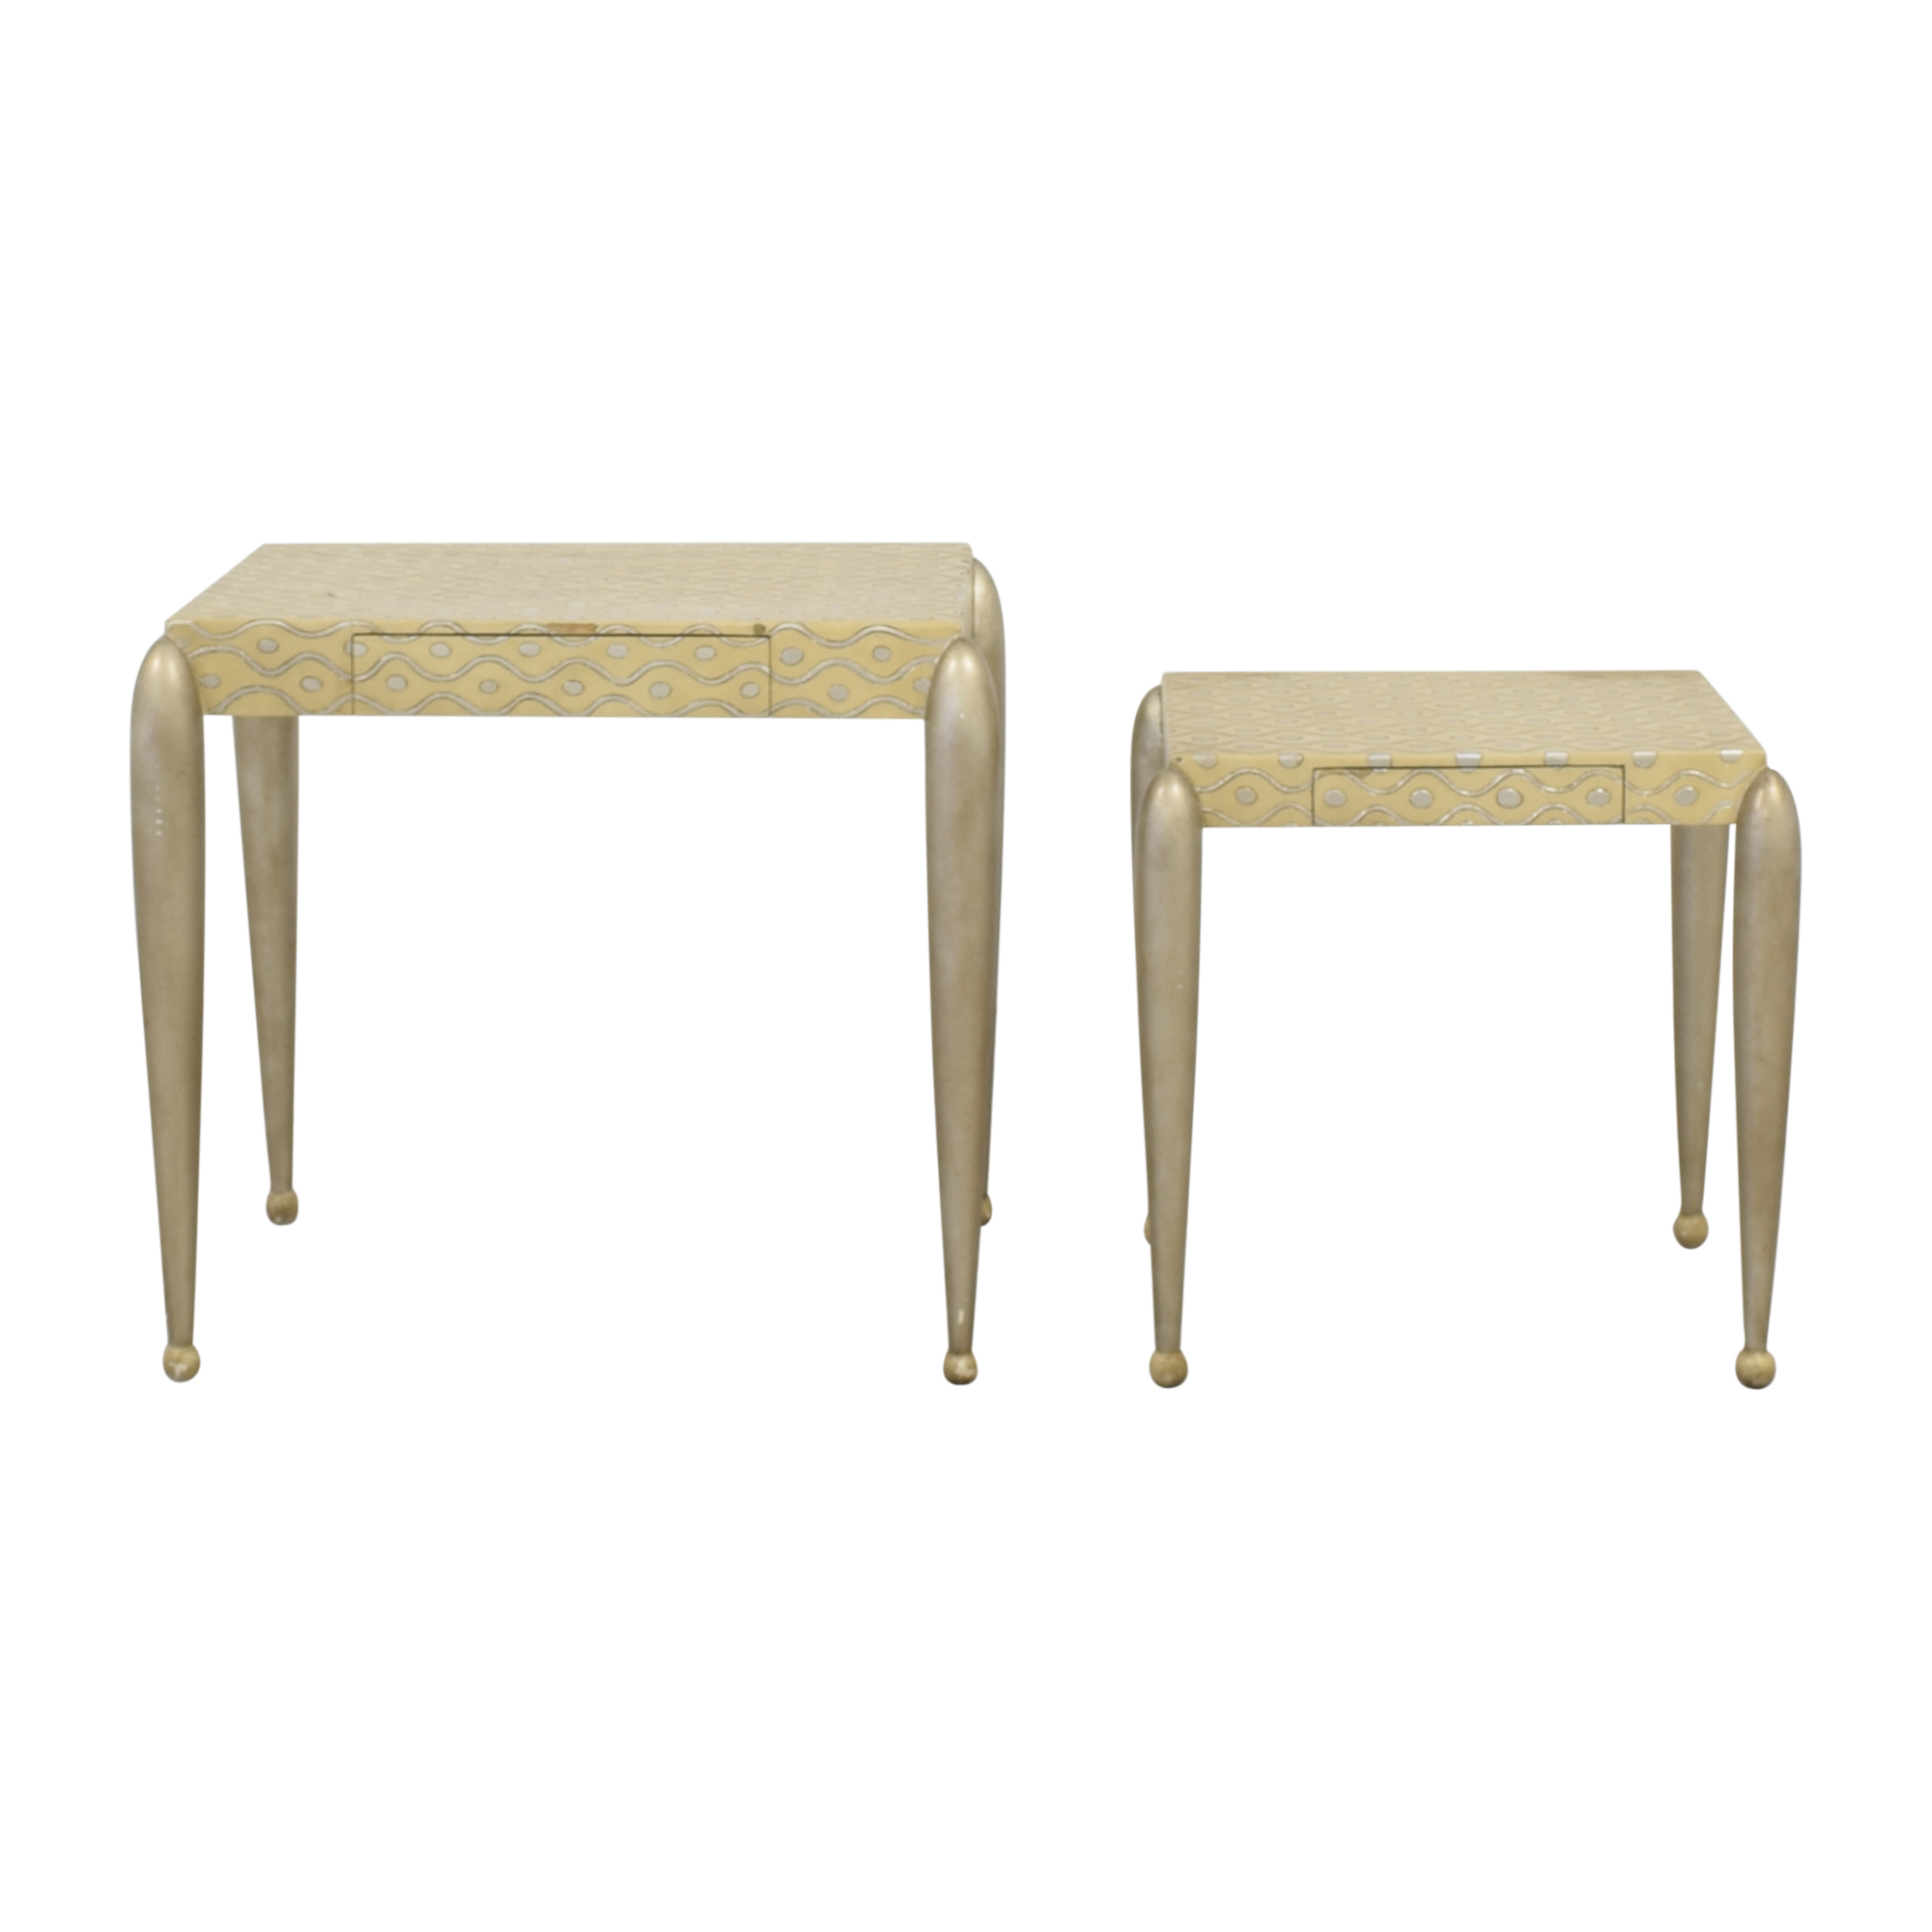 ABC Carpet & Home African Inspired Nesting Tables with Drawers Accent Tables